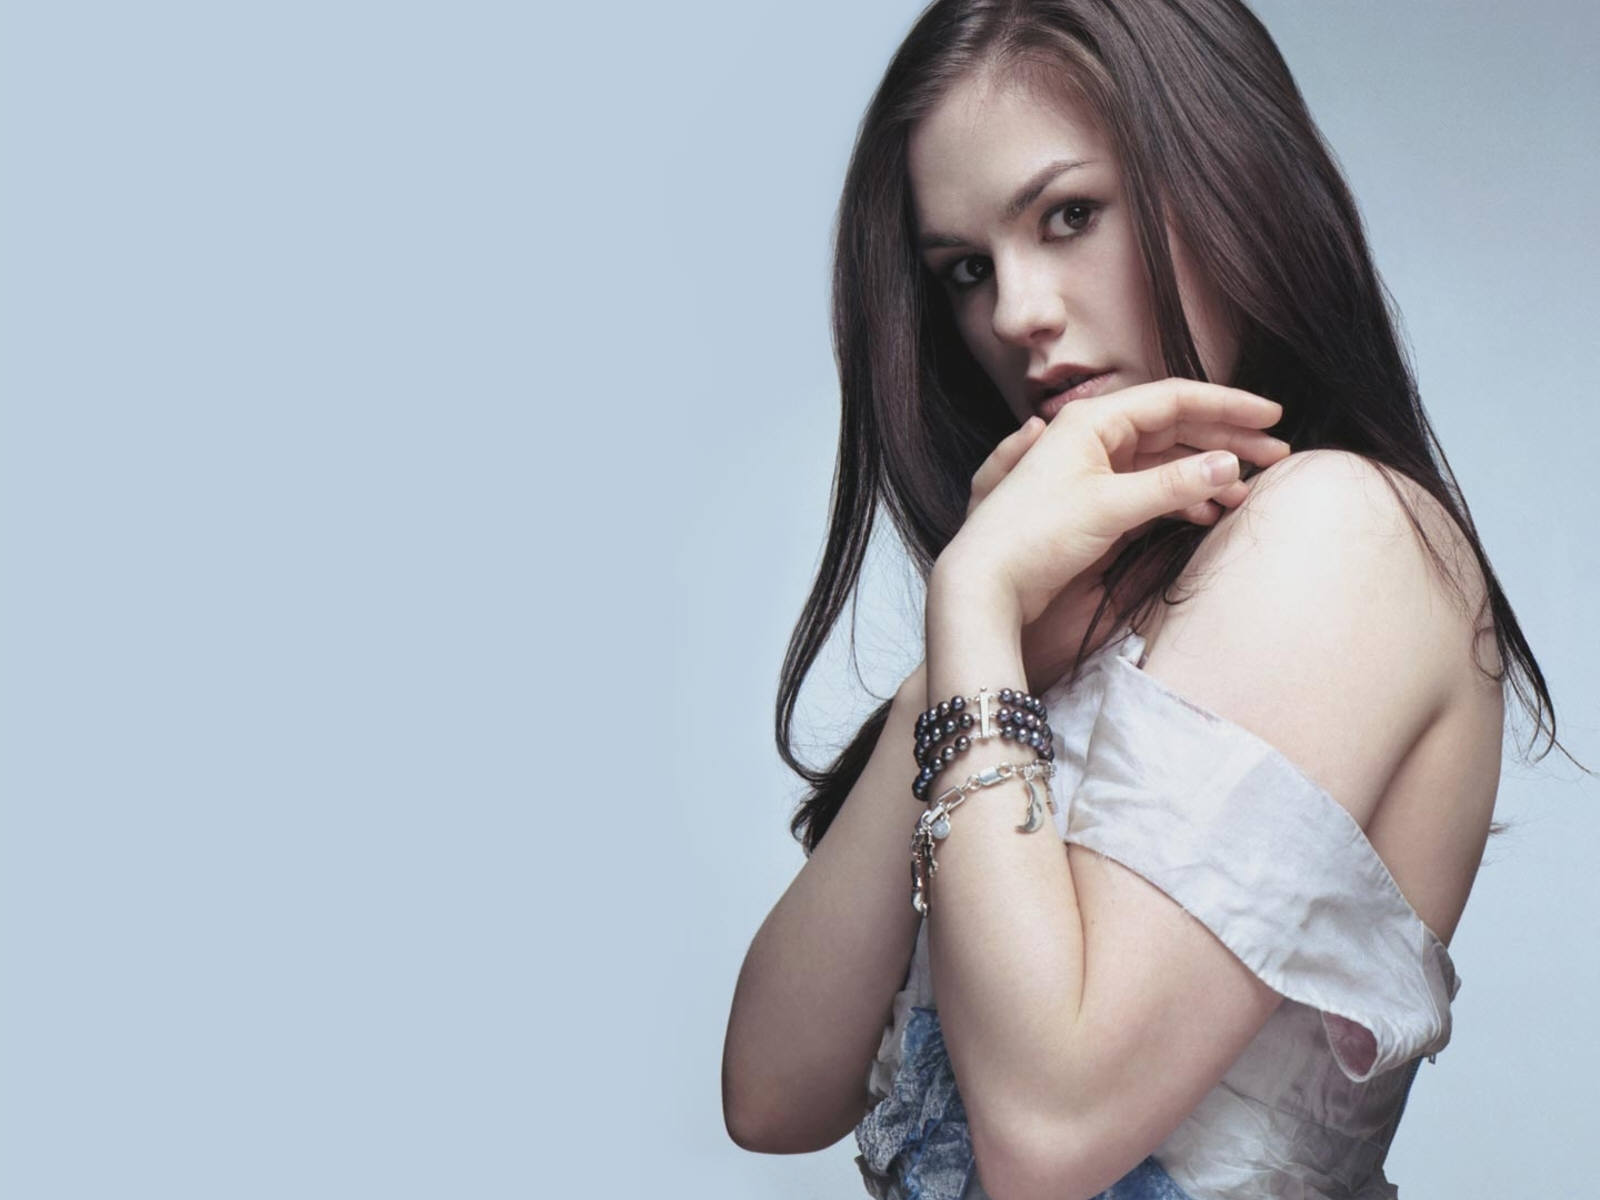 1600x1200 - Anna Paquin Wallpapers 24